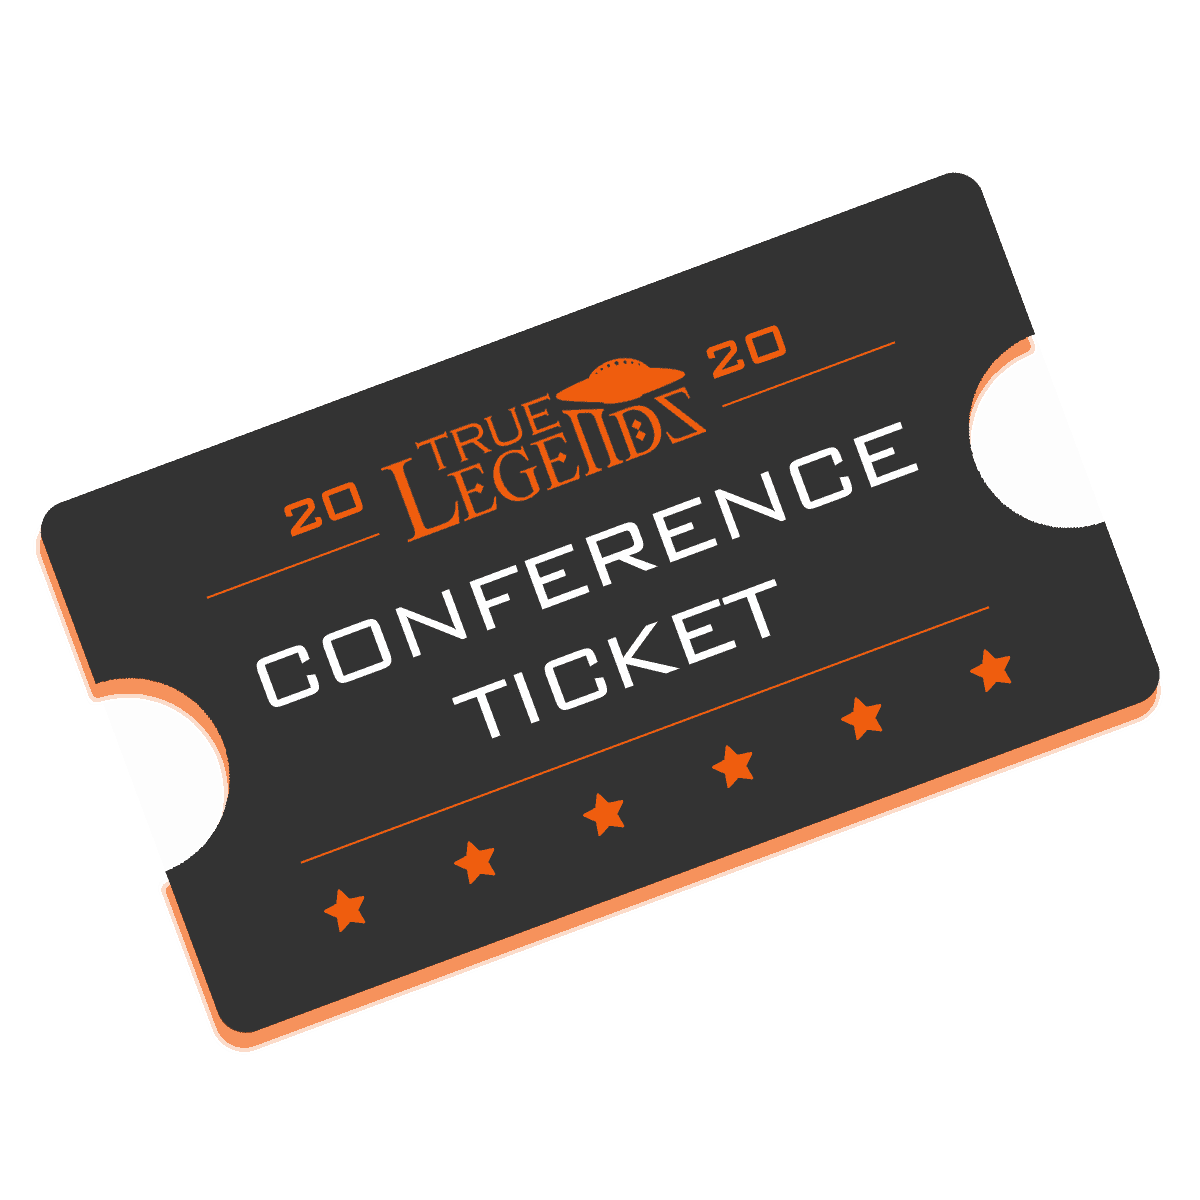 2020 True Legends Conference Ticket